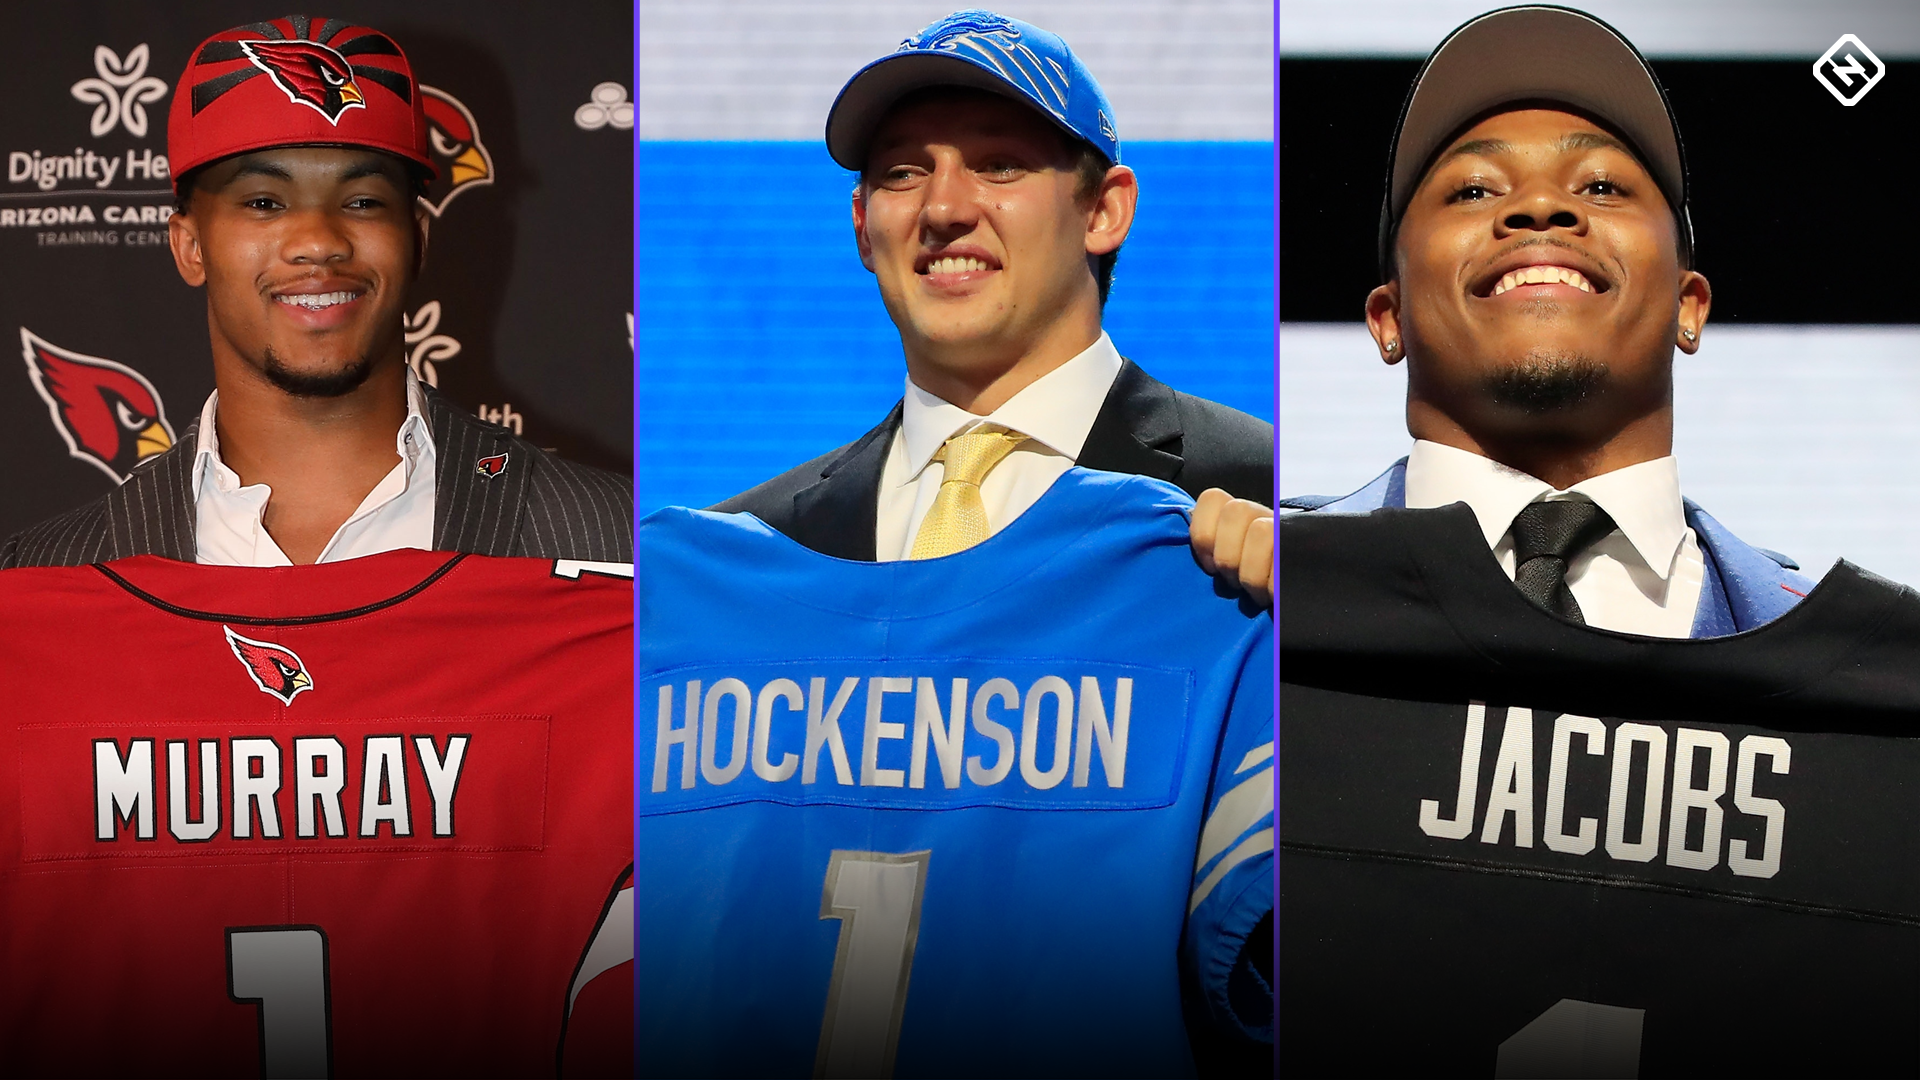 Updated Fantasy Football Rookie Rankings: Top 30 for redraft, dynasty leagues in 2019